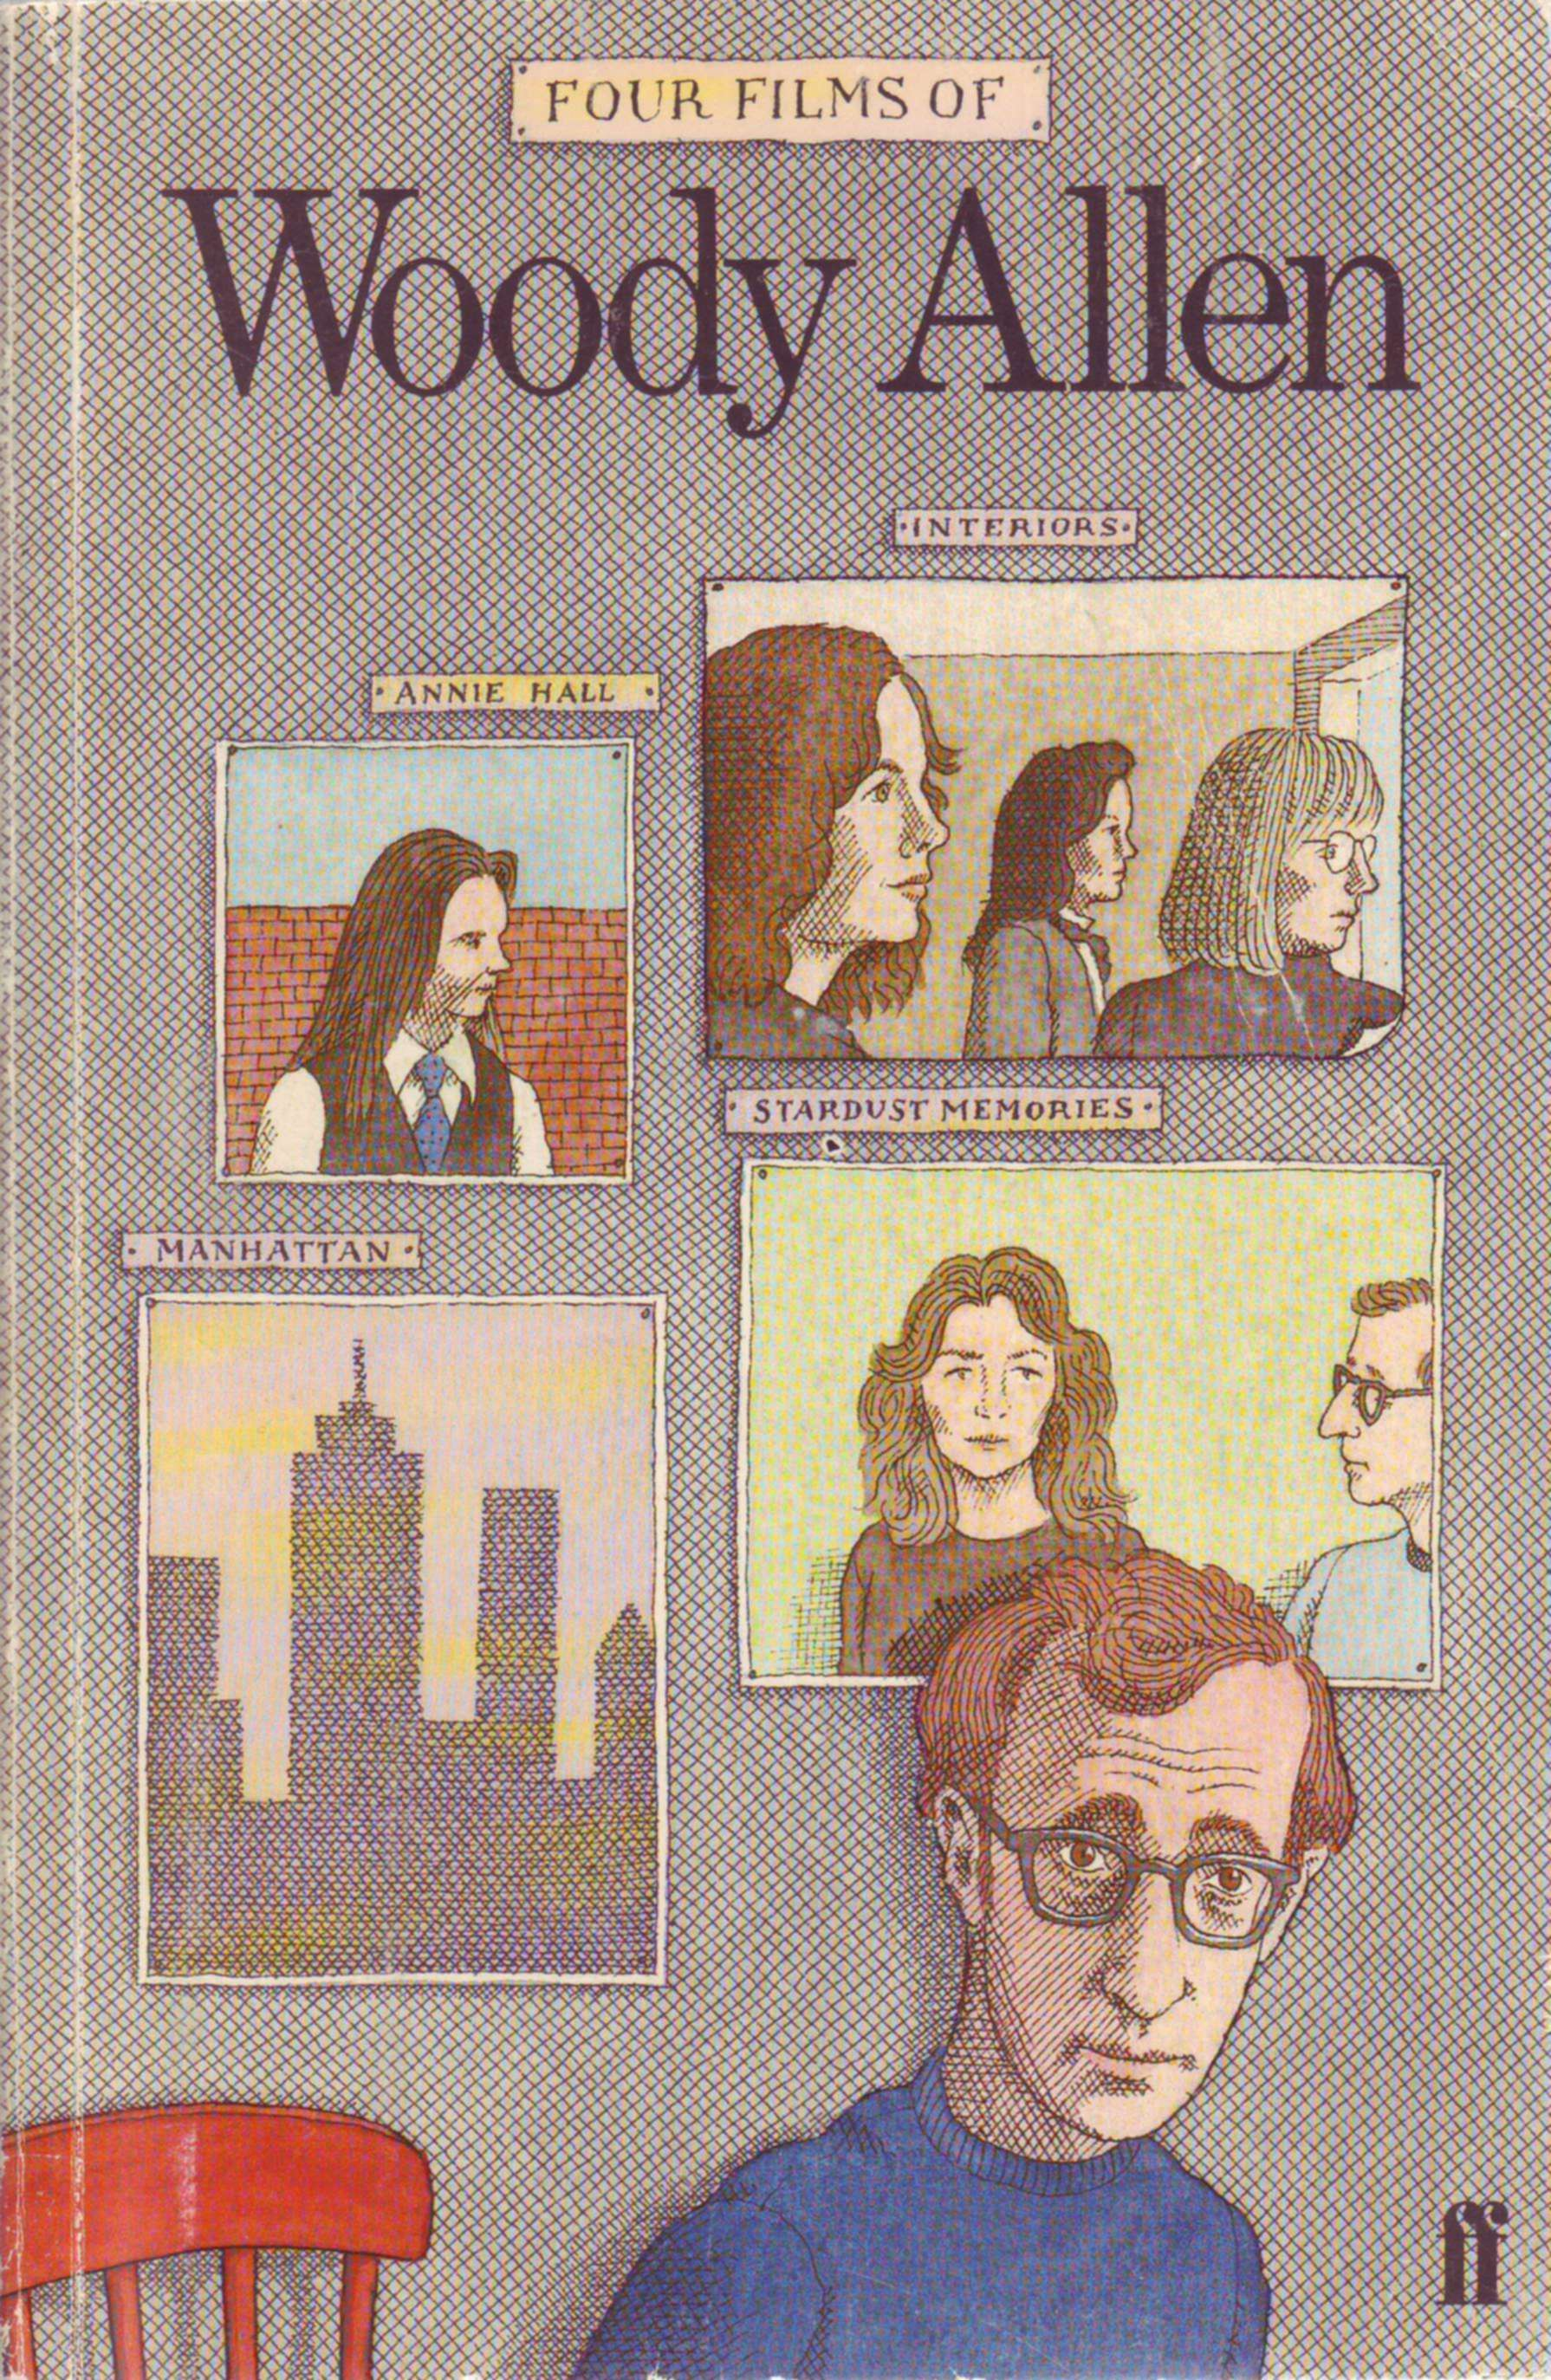 Four Films of Woody Allen